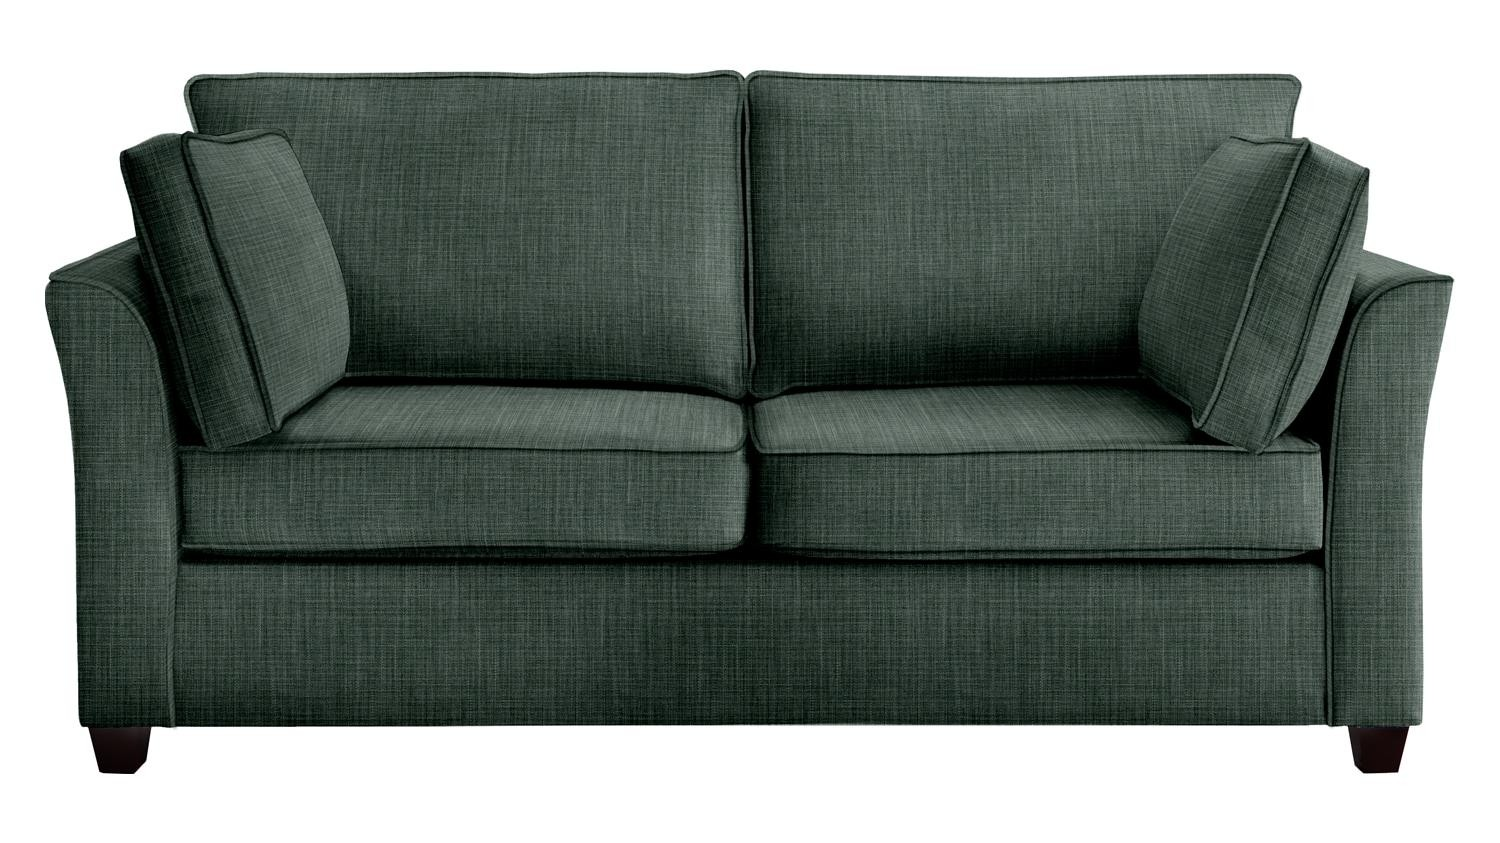 The Elmley 4 Seater Sofa Bed